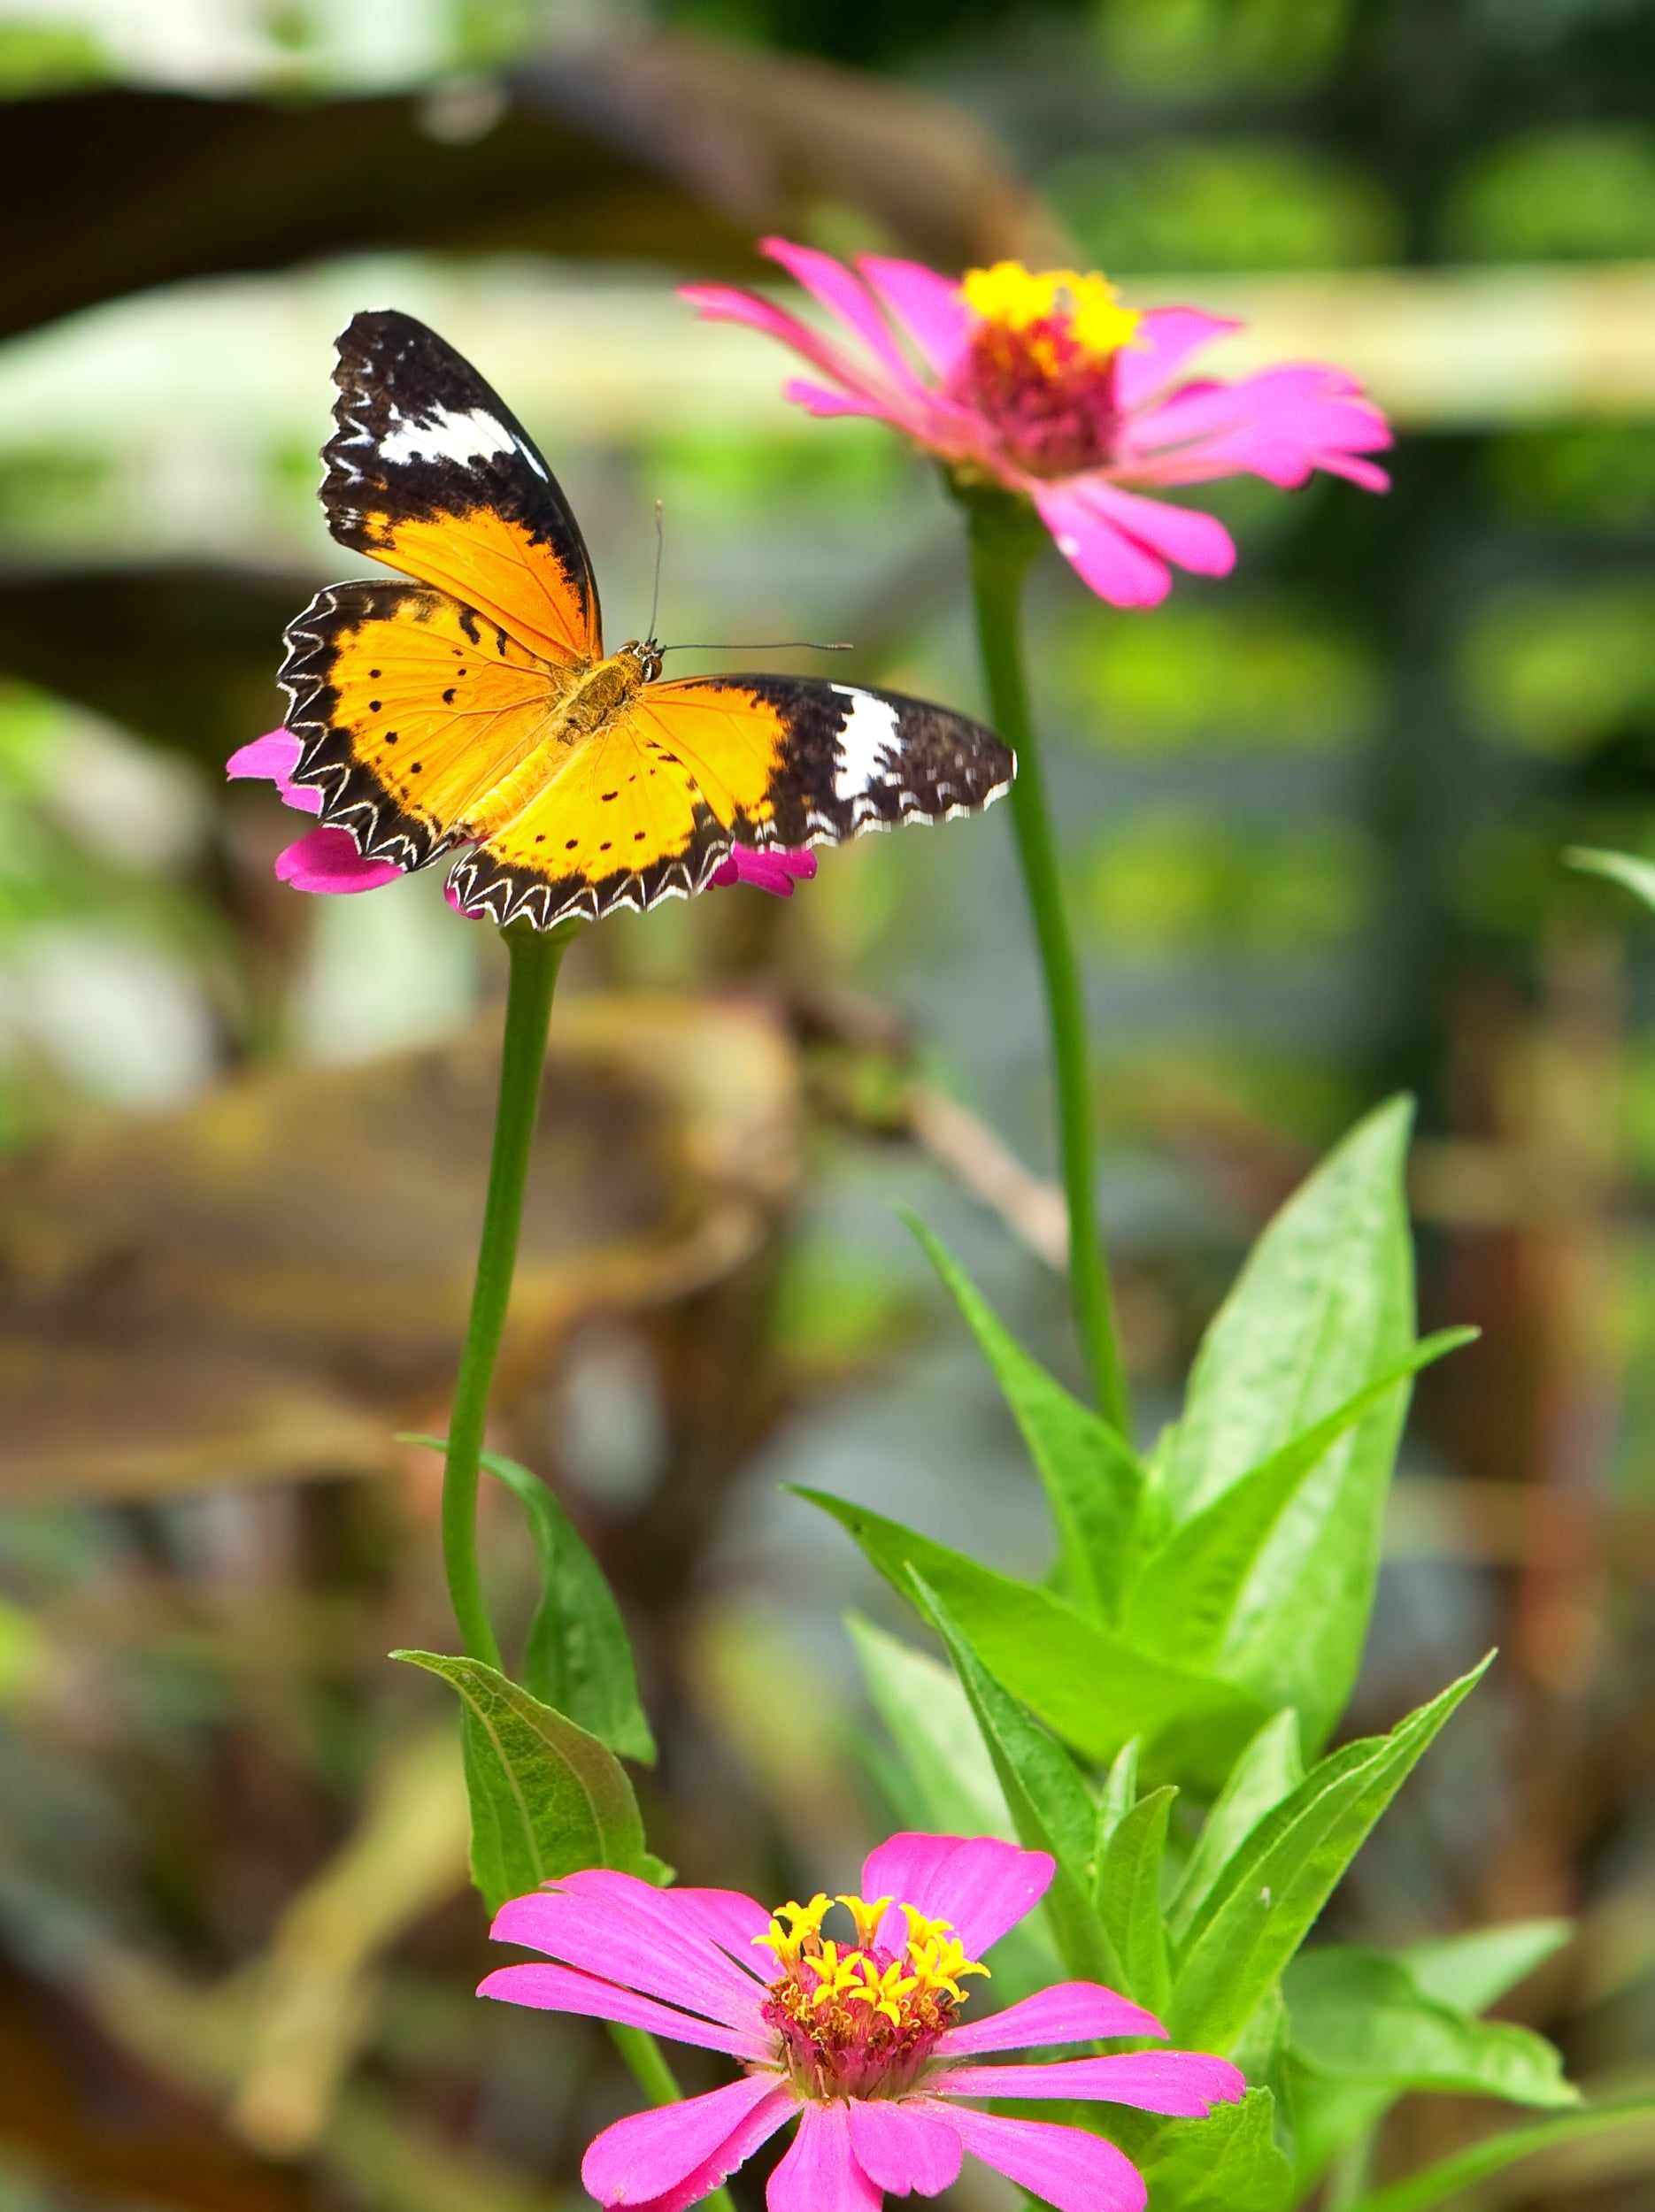 PopsugarLivingSpringHow to Attract Butterflies to Your GardenMay 19, 2017 by Maggie Winterfeldt217 SharesChat with us on Facebook Messenger. Learn what's trending across POPSUGAR.A butterfly garden is one that provides these majestic creatures with everything they need — food, water, sun — in a sheltered and hospitable environment. With a bit of thought and a few changes, you can turn your backyard into a gorgeous garden and natural butterfly habitat. Here's how.Love what you're reading? Head over to our Snapchat for more awesome, bite-sized content!Plant Ample Nectar SourcesButterflies' main objective is to find nectar, their food, so you can attract them by filling your garden with flowers rich in it. Nectar-rich flowers include aster, butterfly bush, goldenrod, lavender, lilac, milkweed, mint, sage, snapdragon, zinnia, and others. Butterflies will be most encouraged to take up residence in your garden if you space your plantings out for continuous bloom, so one plant starts blooming when another stops, - 웹